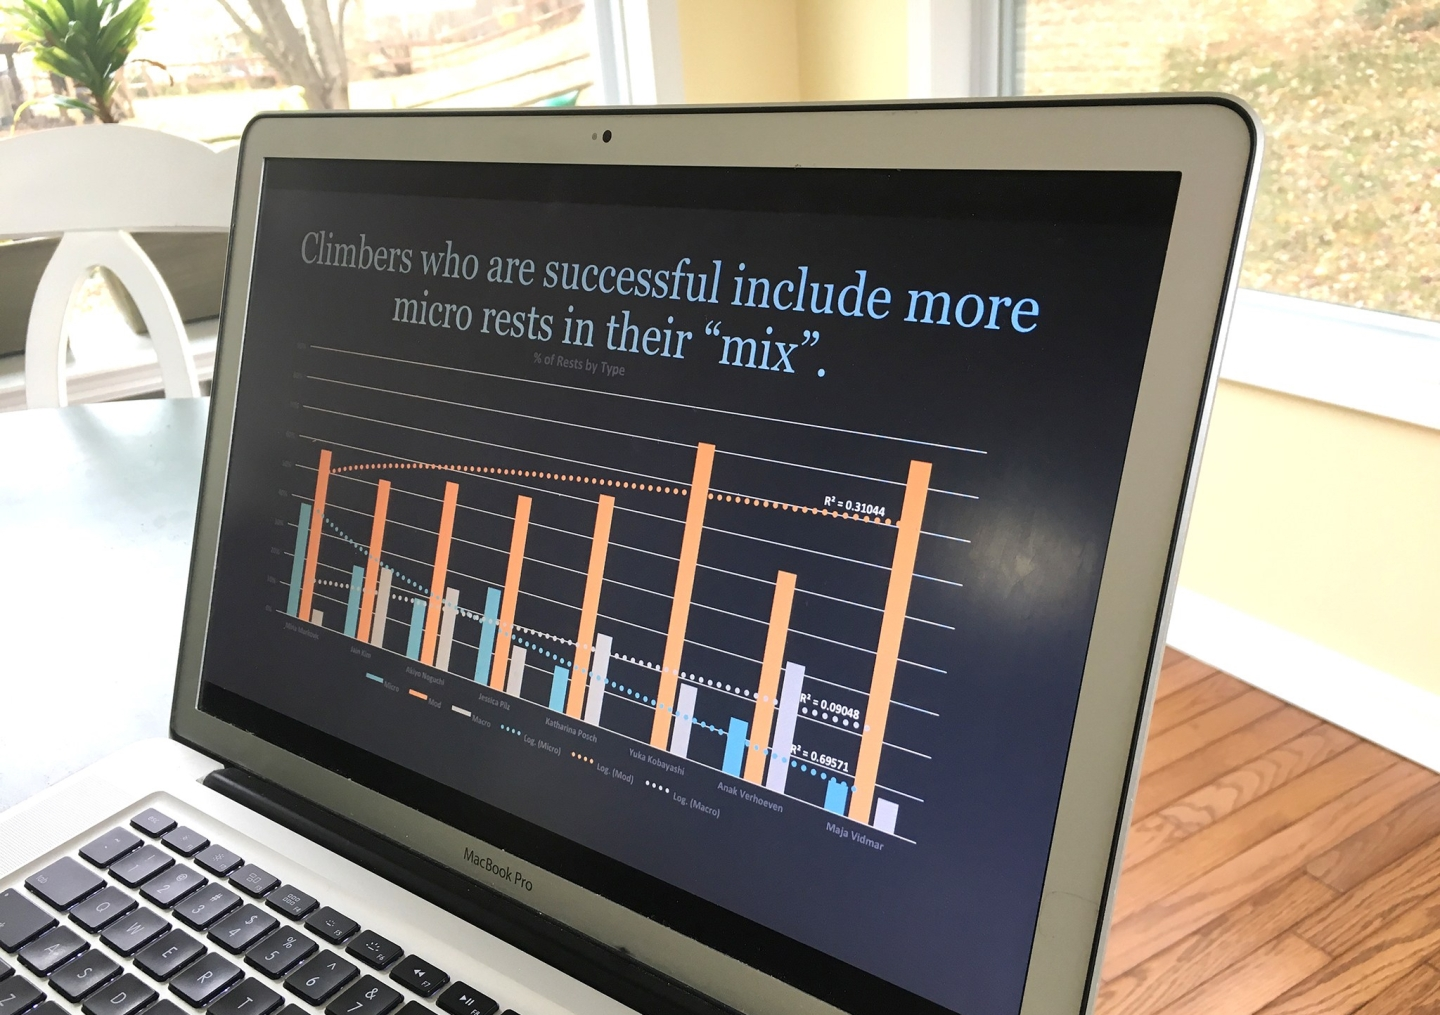 Laptop with climbing research data